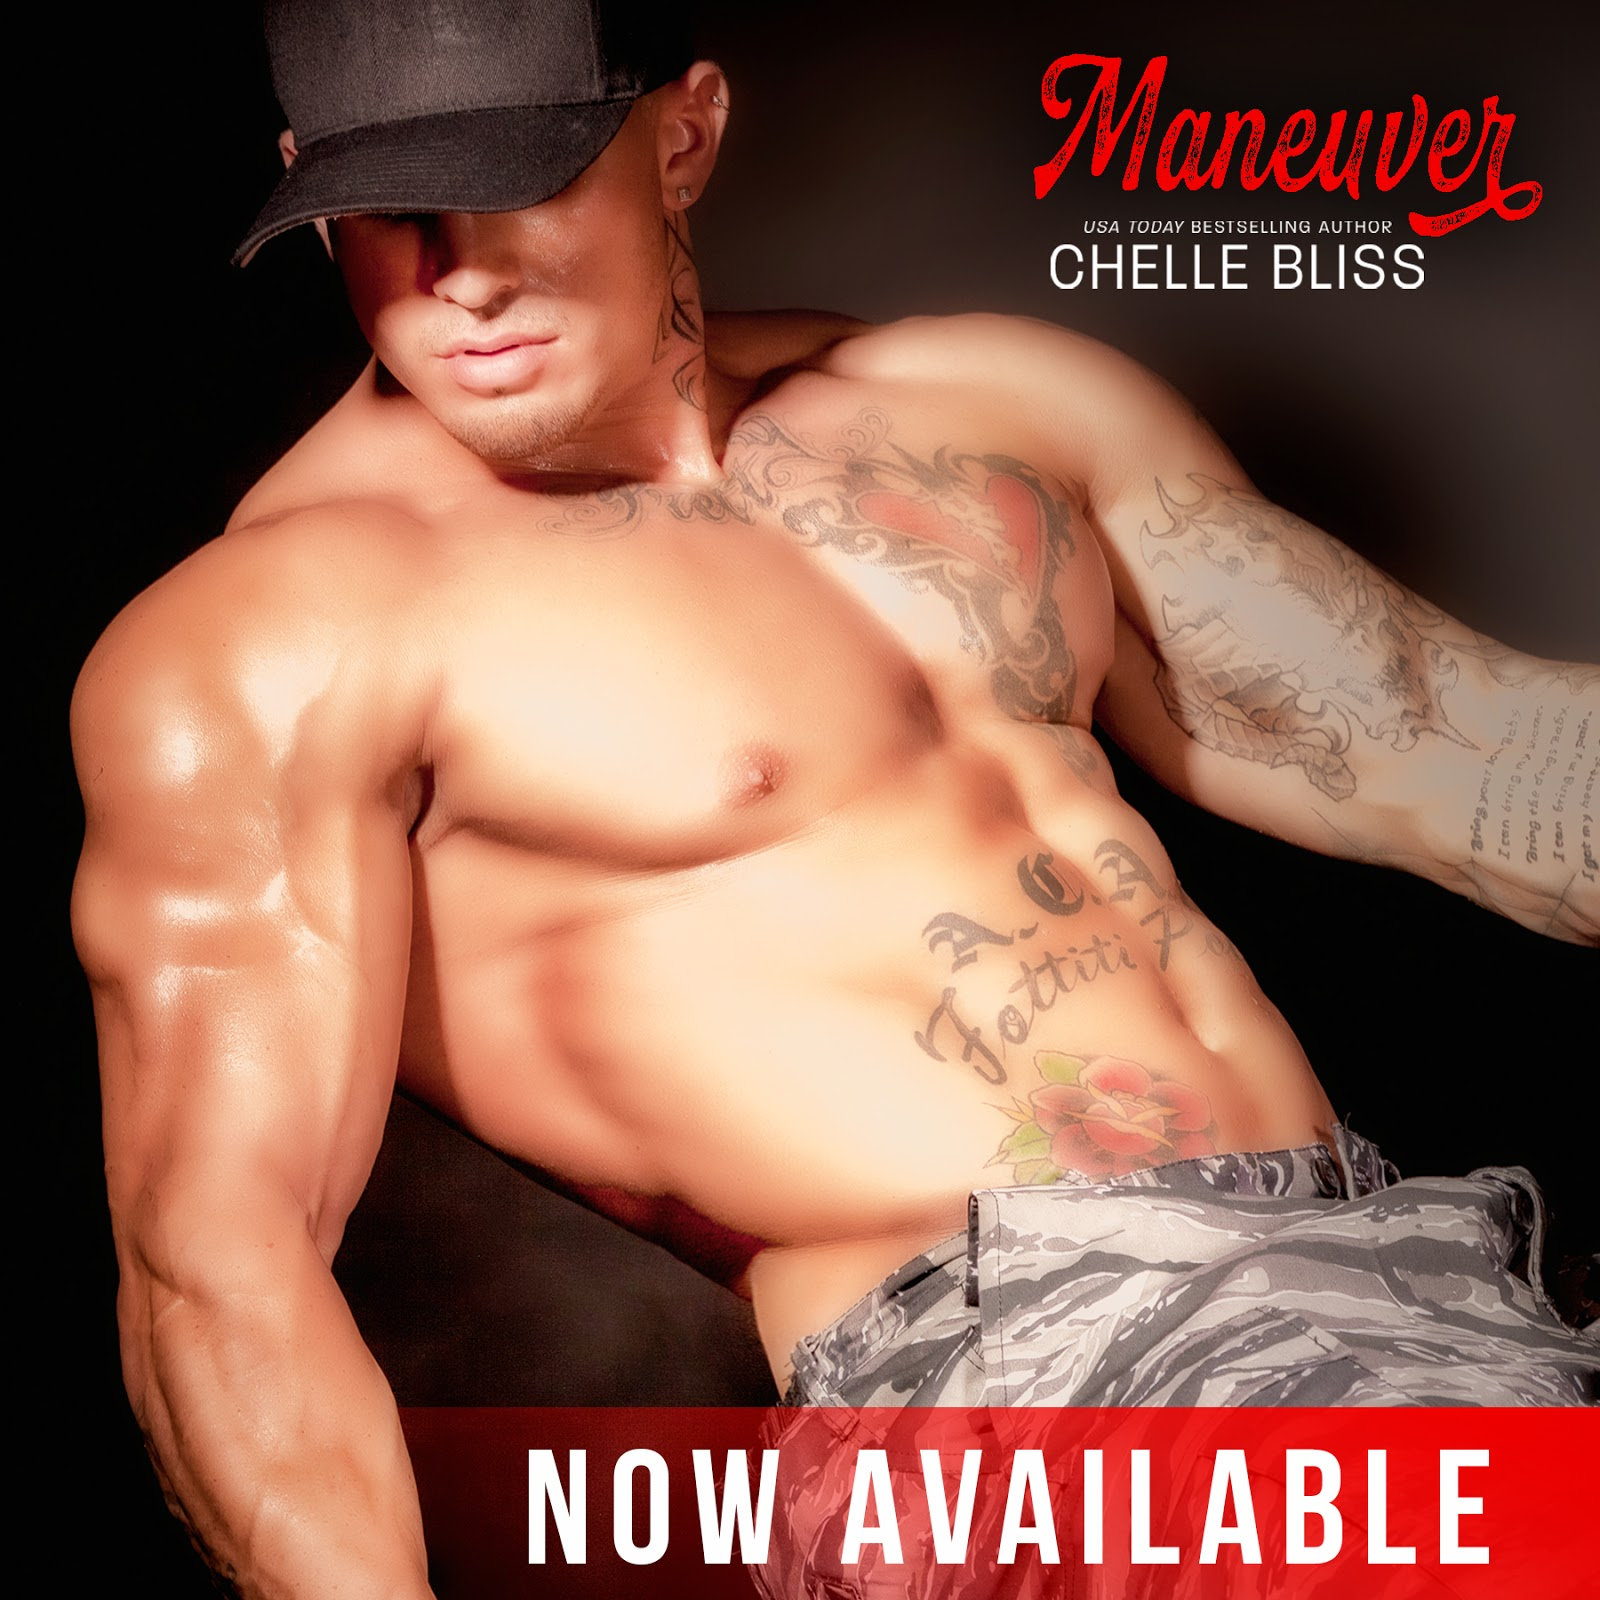 Maneuver Book by Chelle Bliss – jessicacassidy com